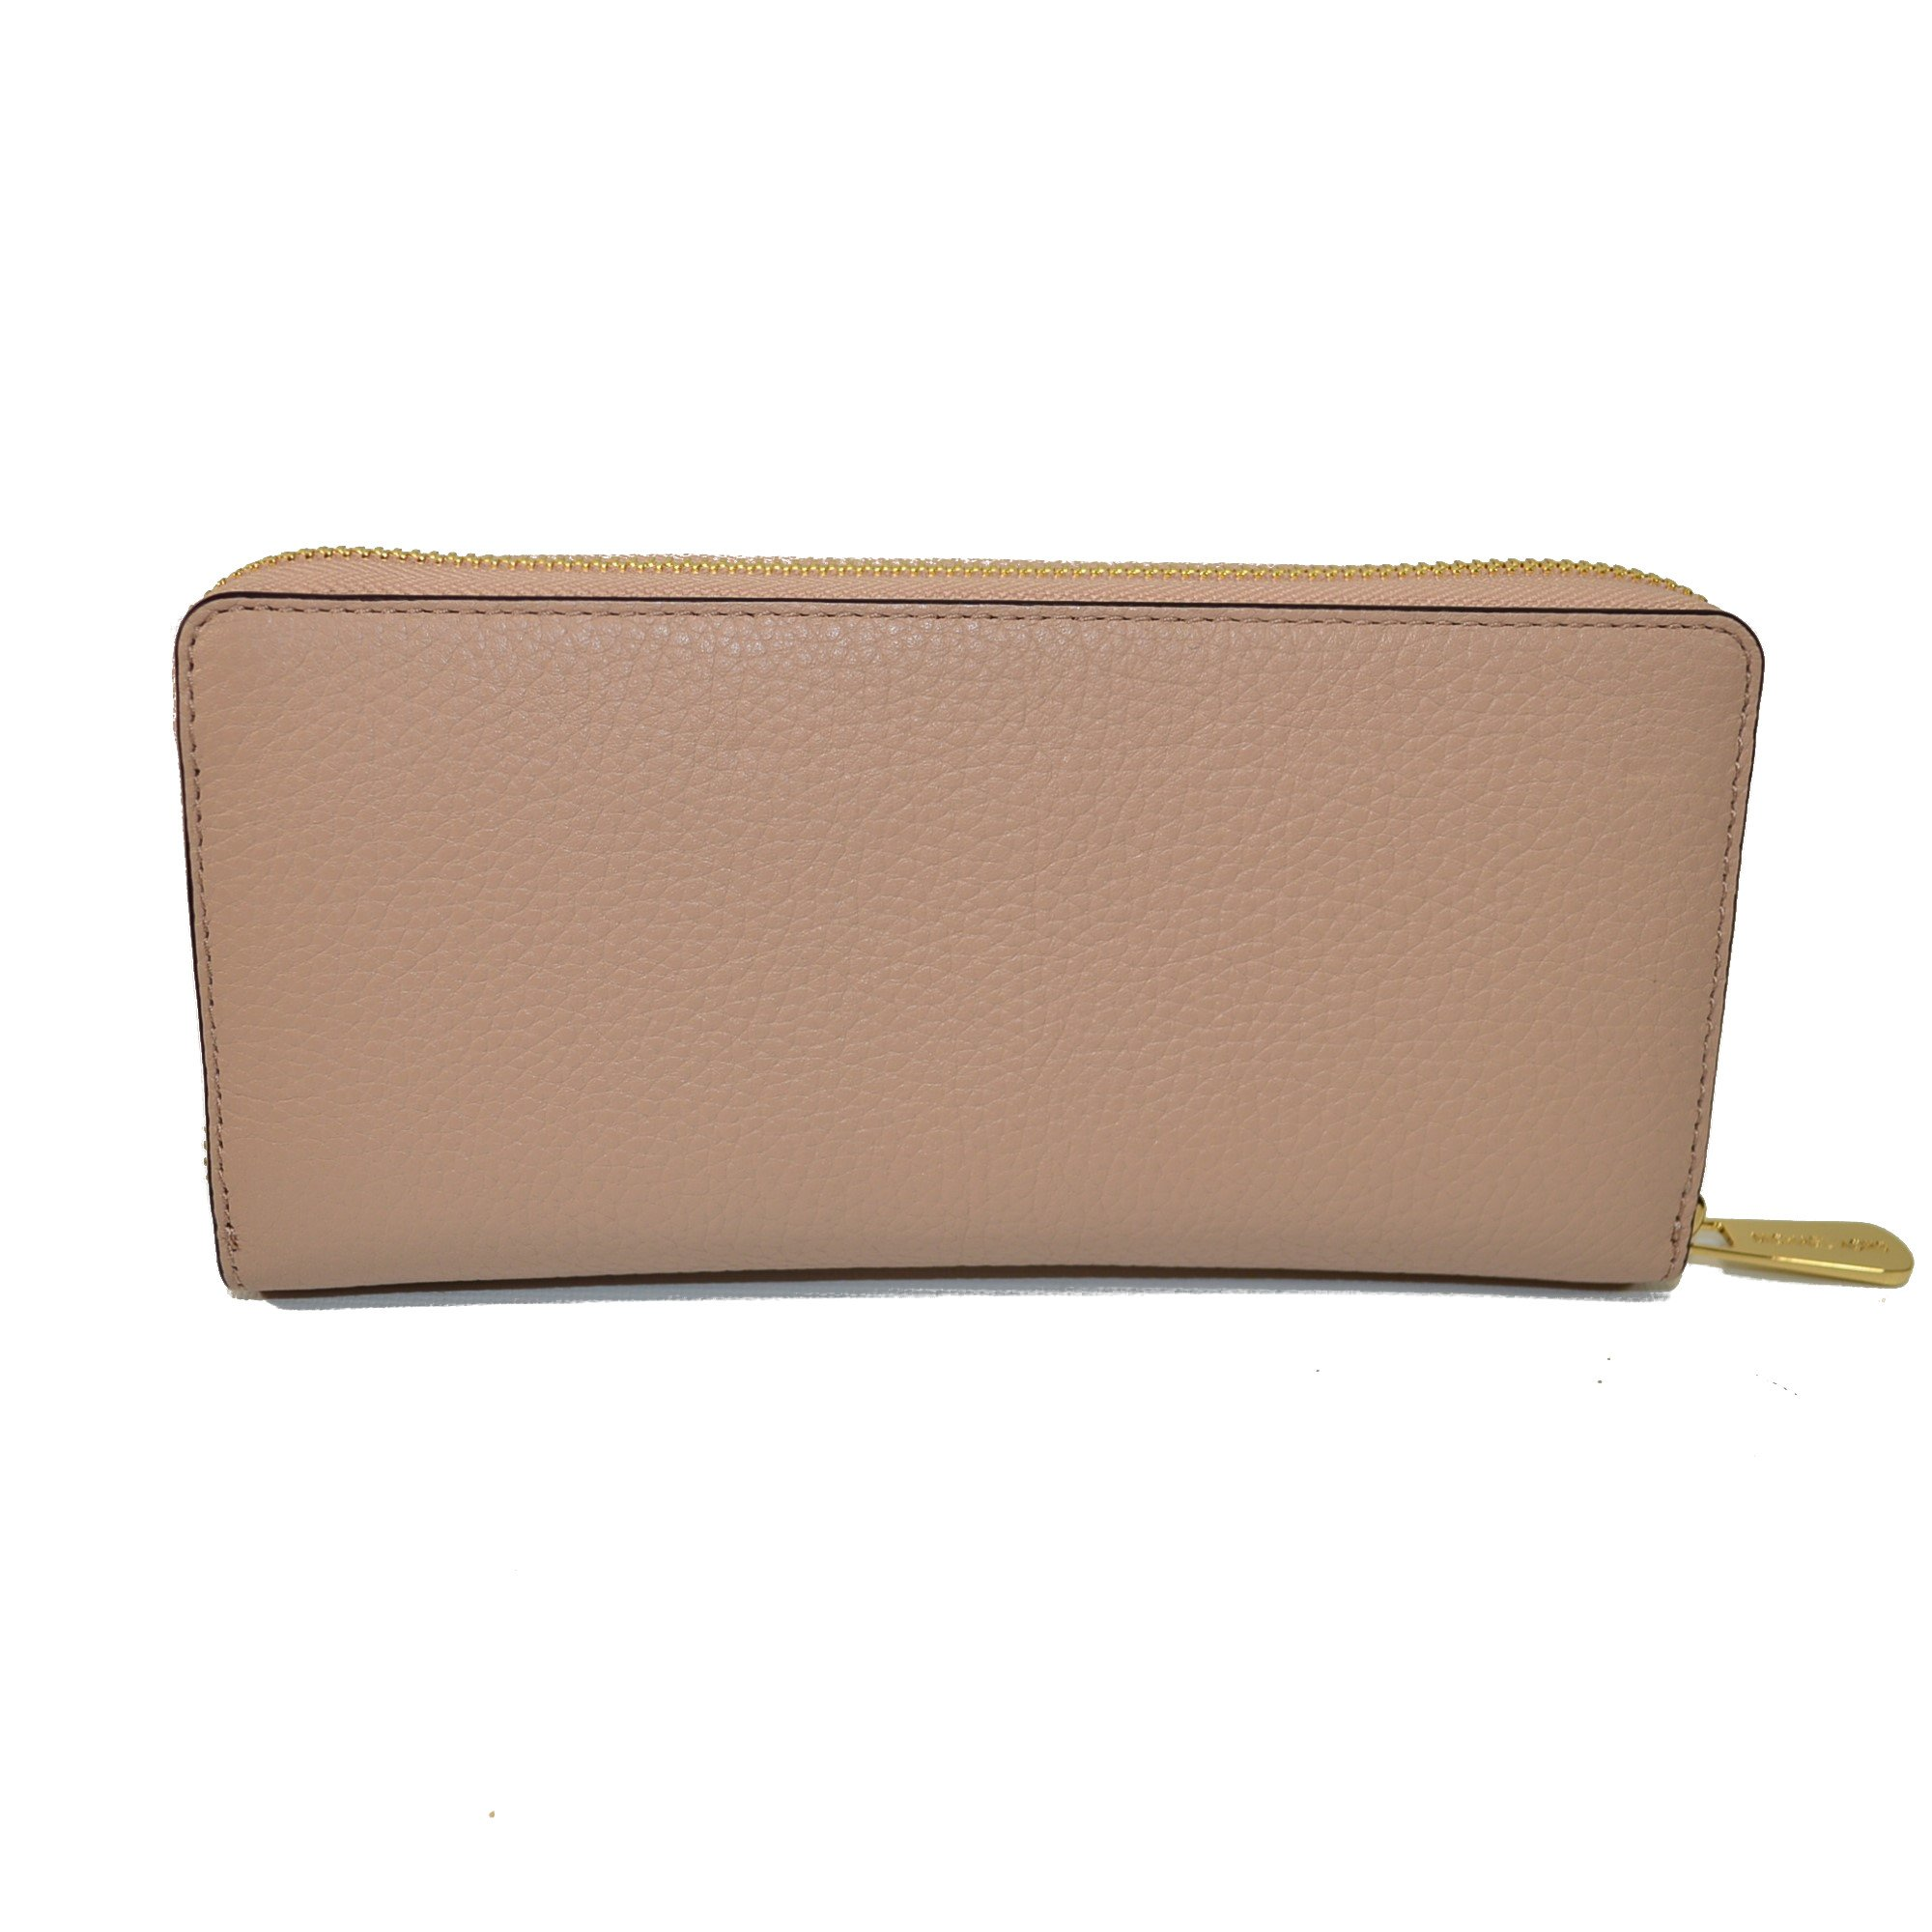 Michael Kors Jet Set Travel Zip Around Leather Clutch Blush by Michael Kors (Image #3)